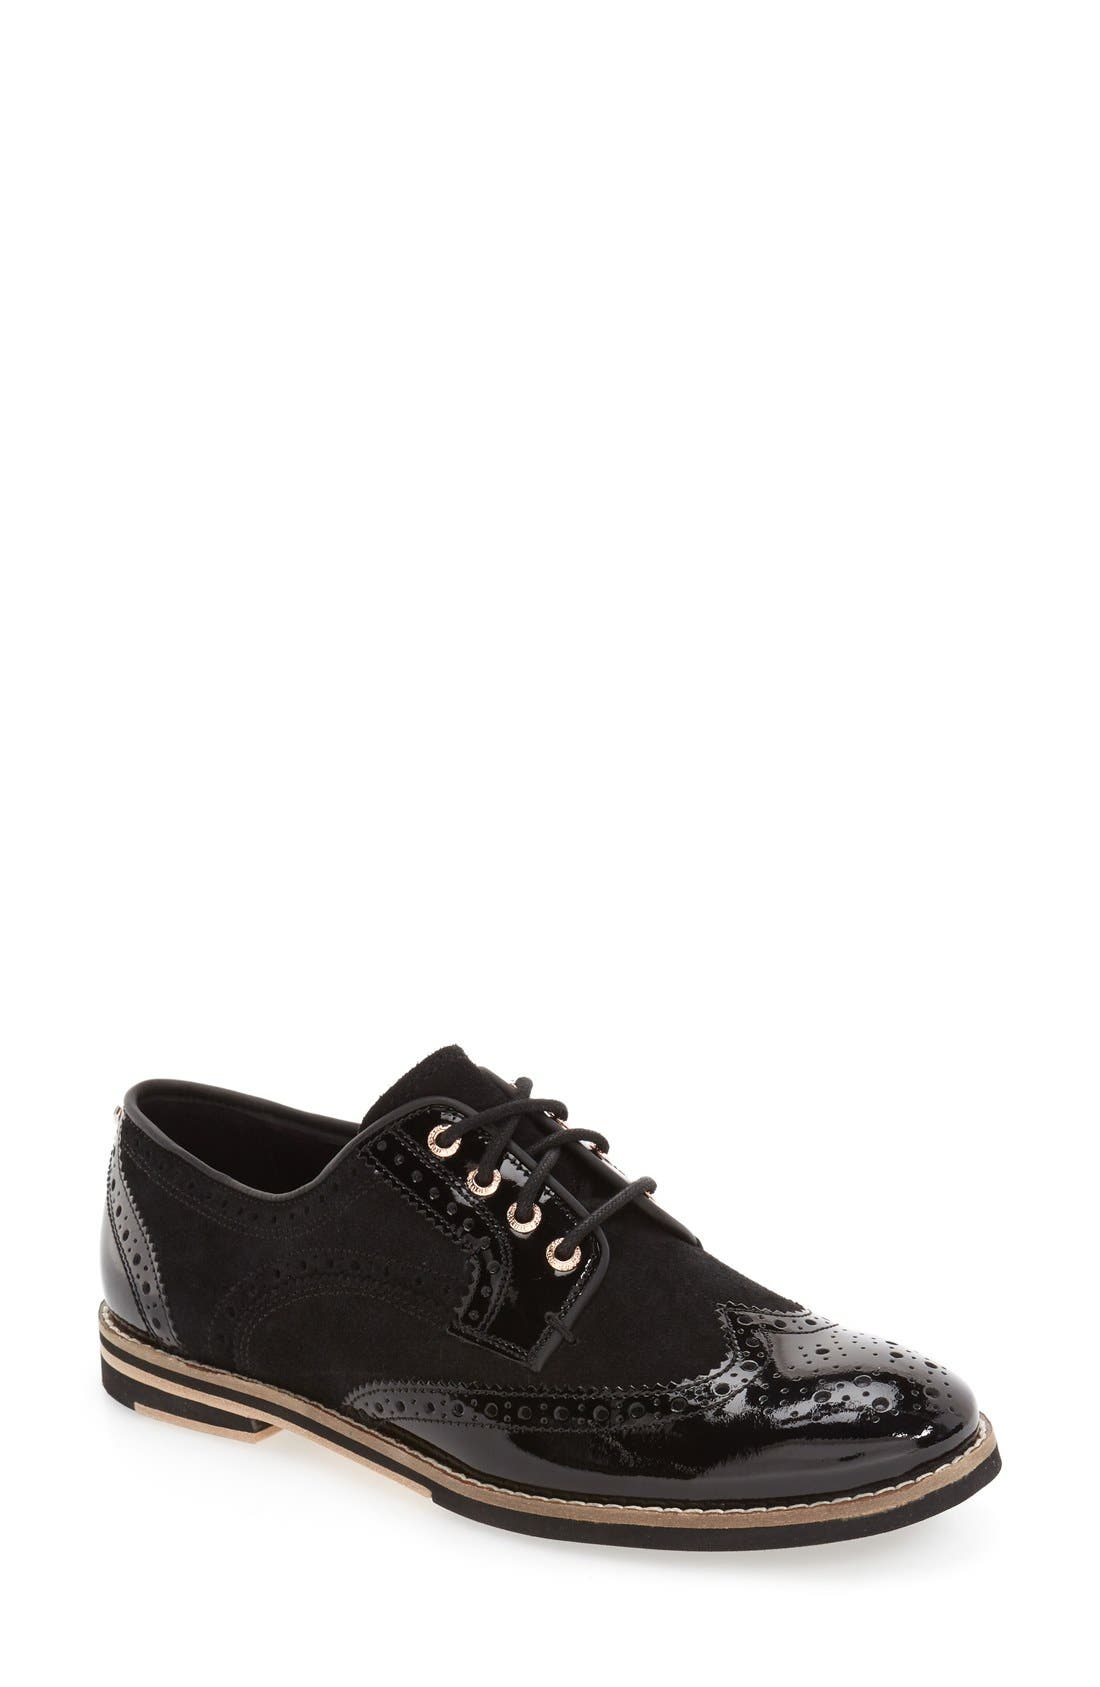 TED BAKER LONDON,                             'Anoihe' Oxford,                             Main thumbnail 1, color,                             015